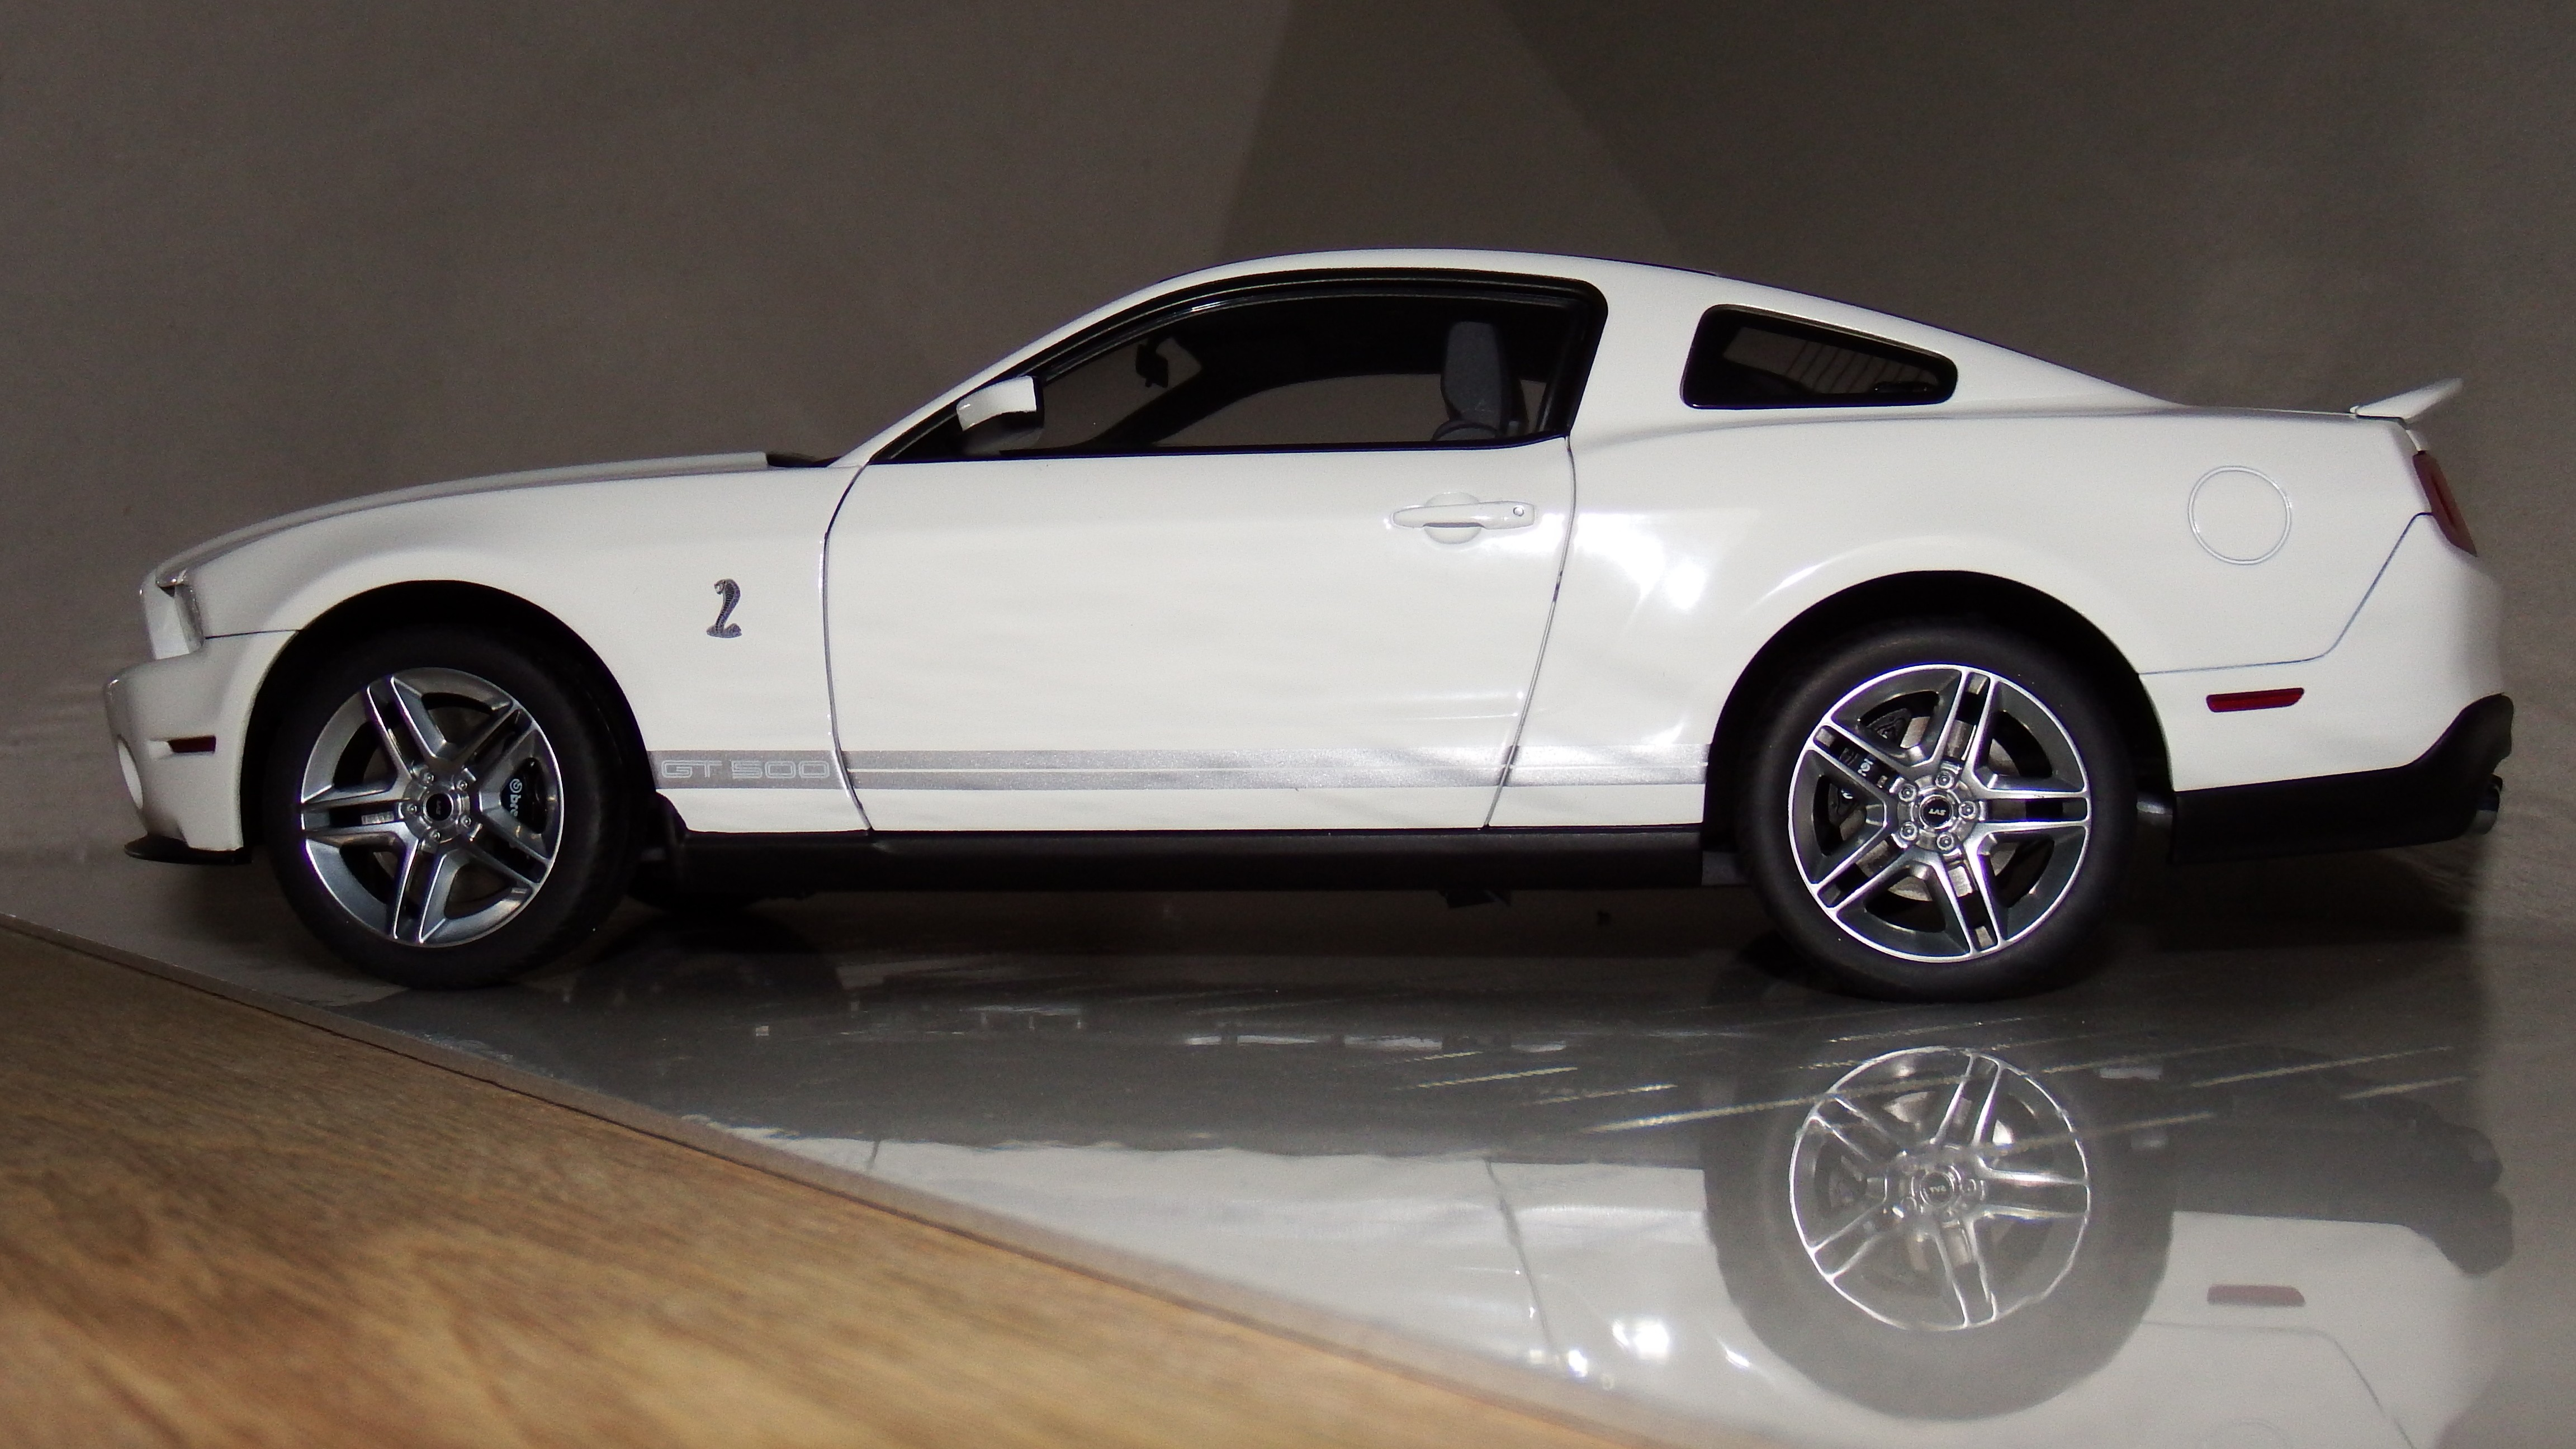 AutoArt Ford Mustang Shelby GT500 - DX Muscle Cars   Pony Cars ...